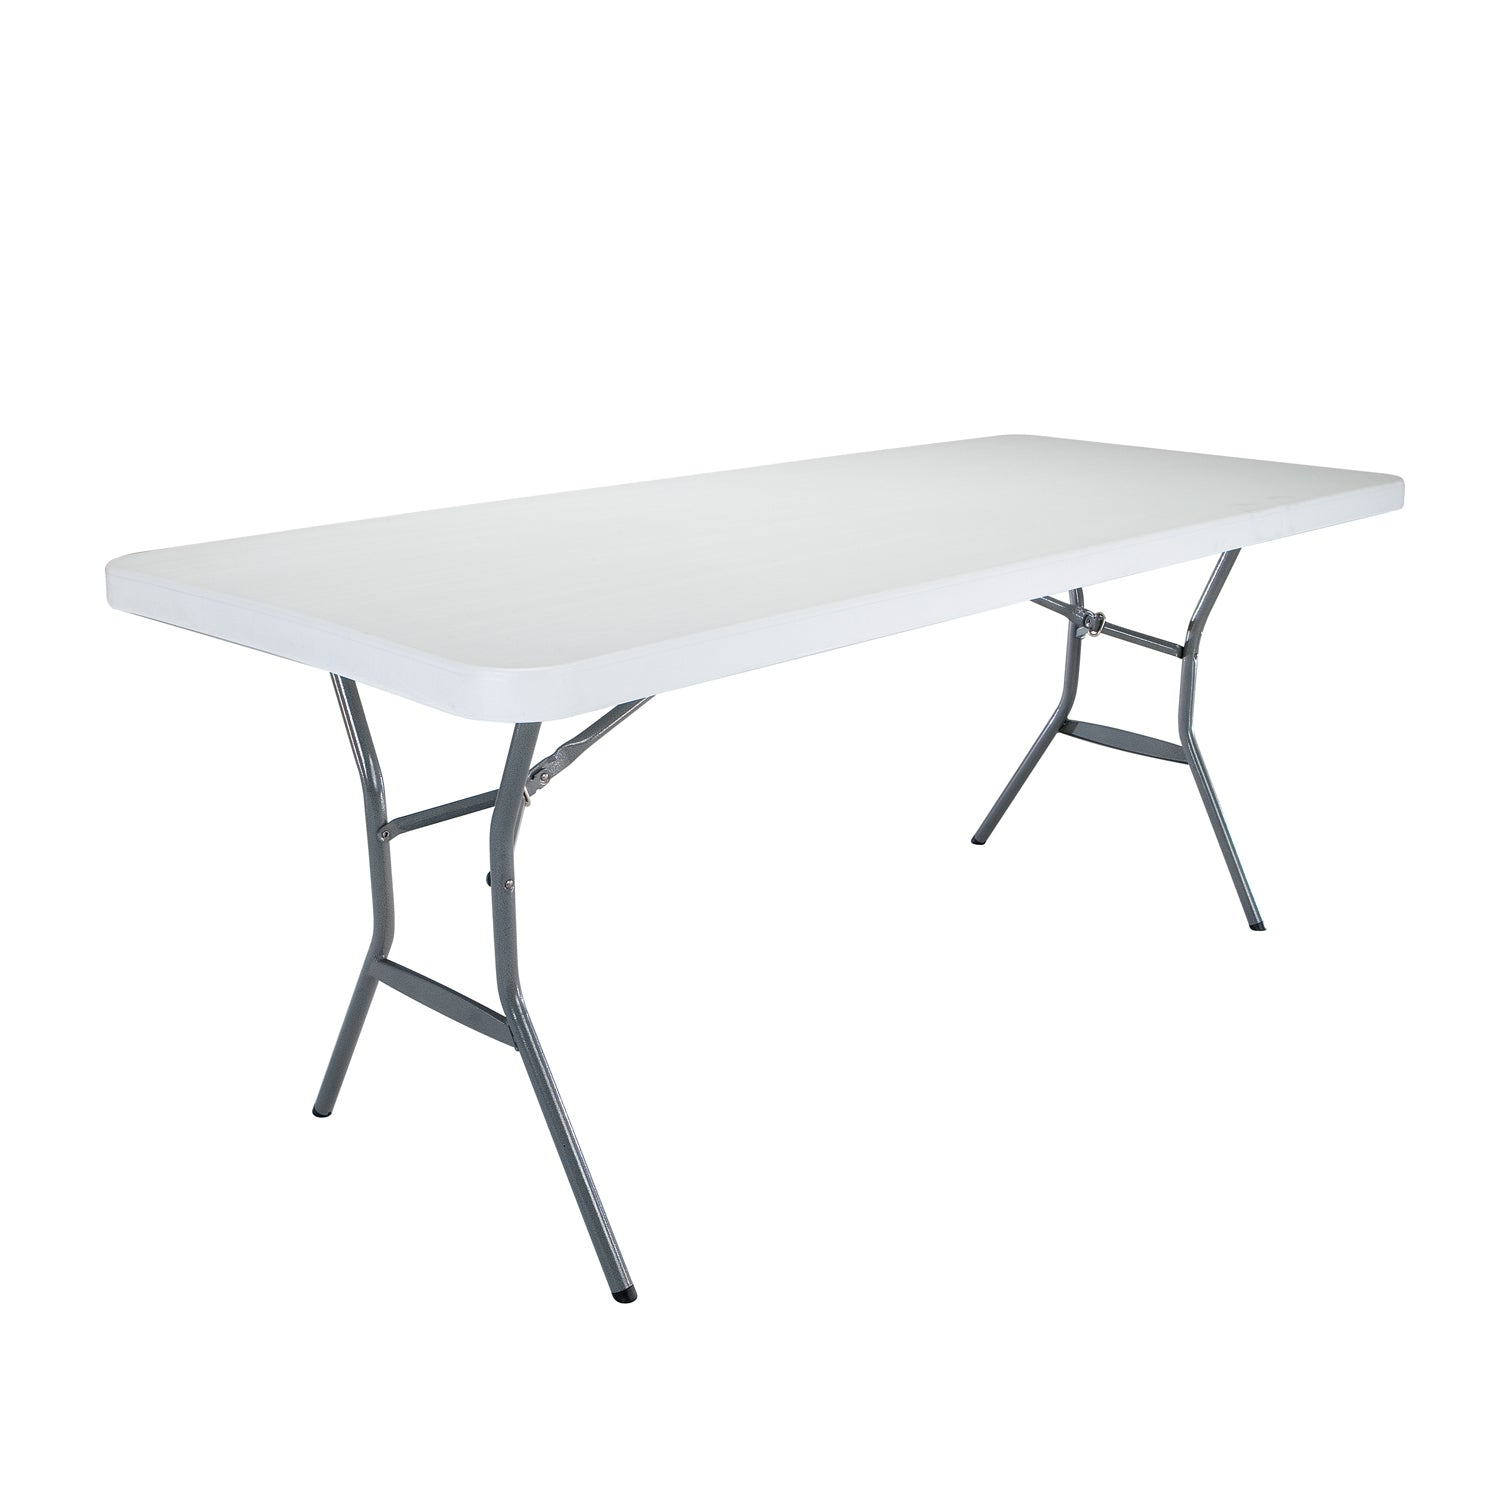 Folding Table 6 Foot Light Commercial 2924